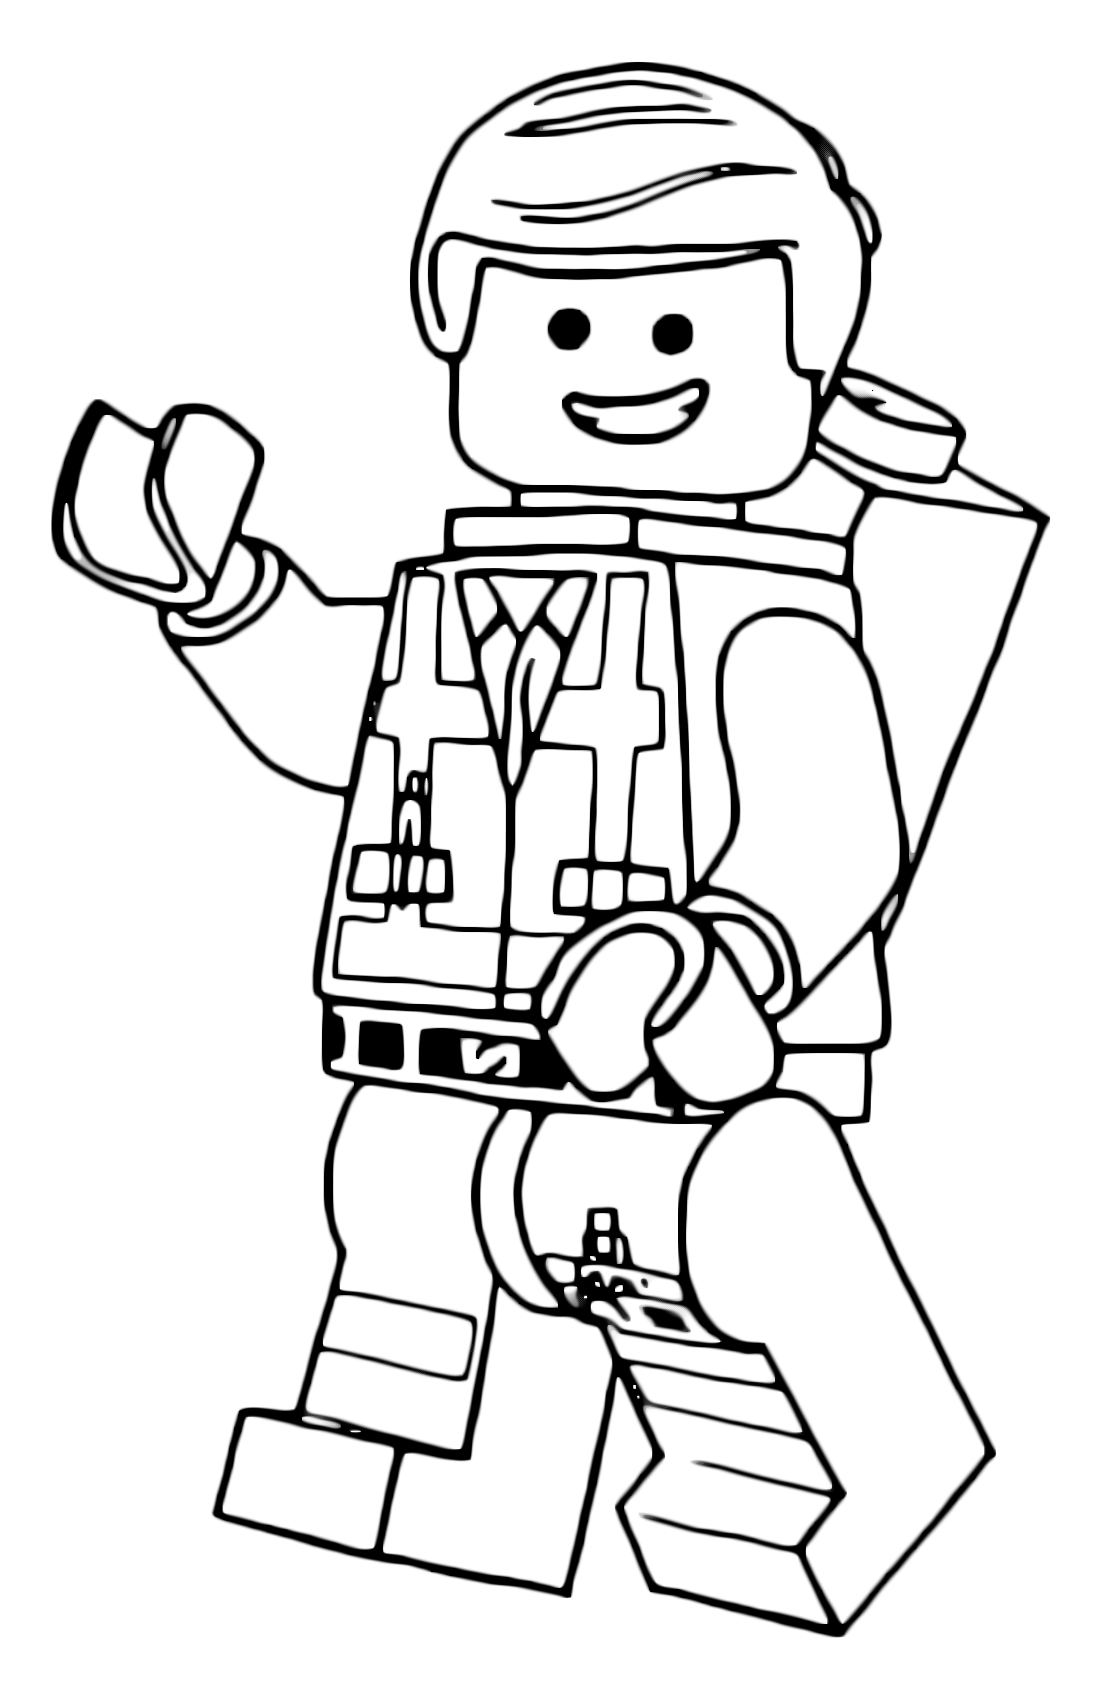 Printable lego movie 2 coloring pages